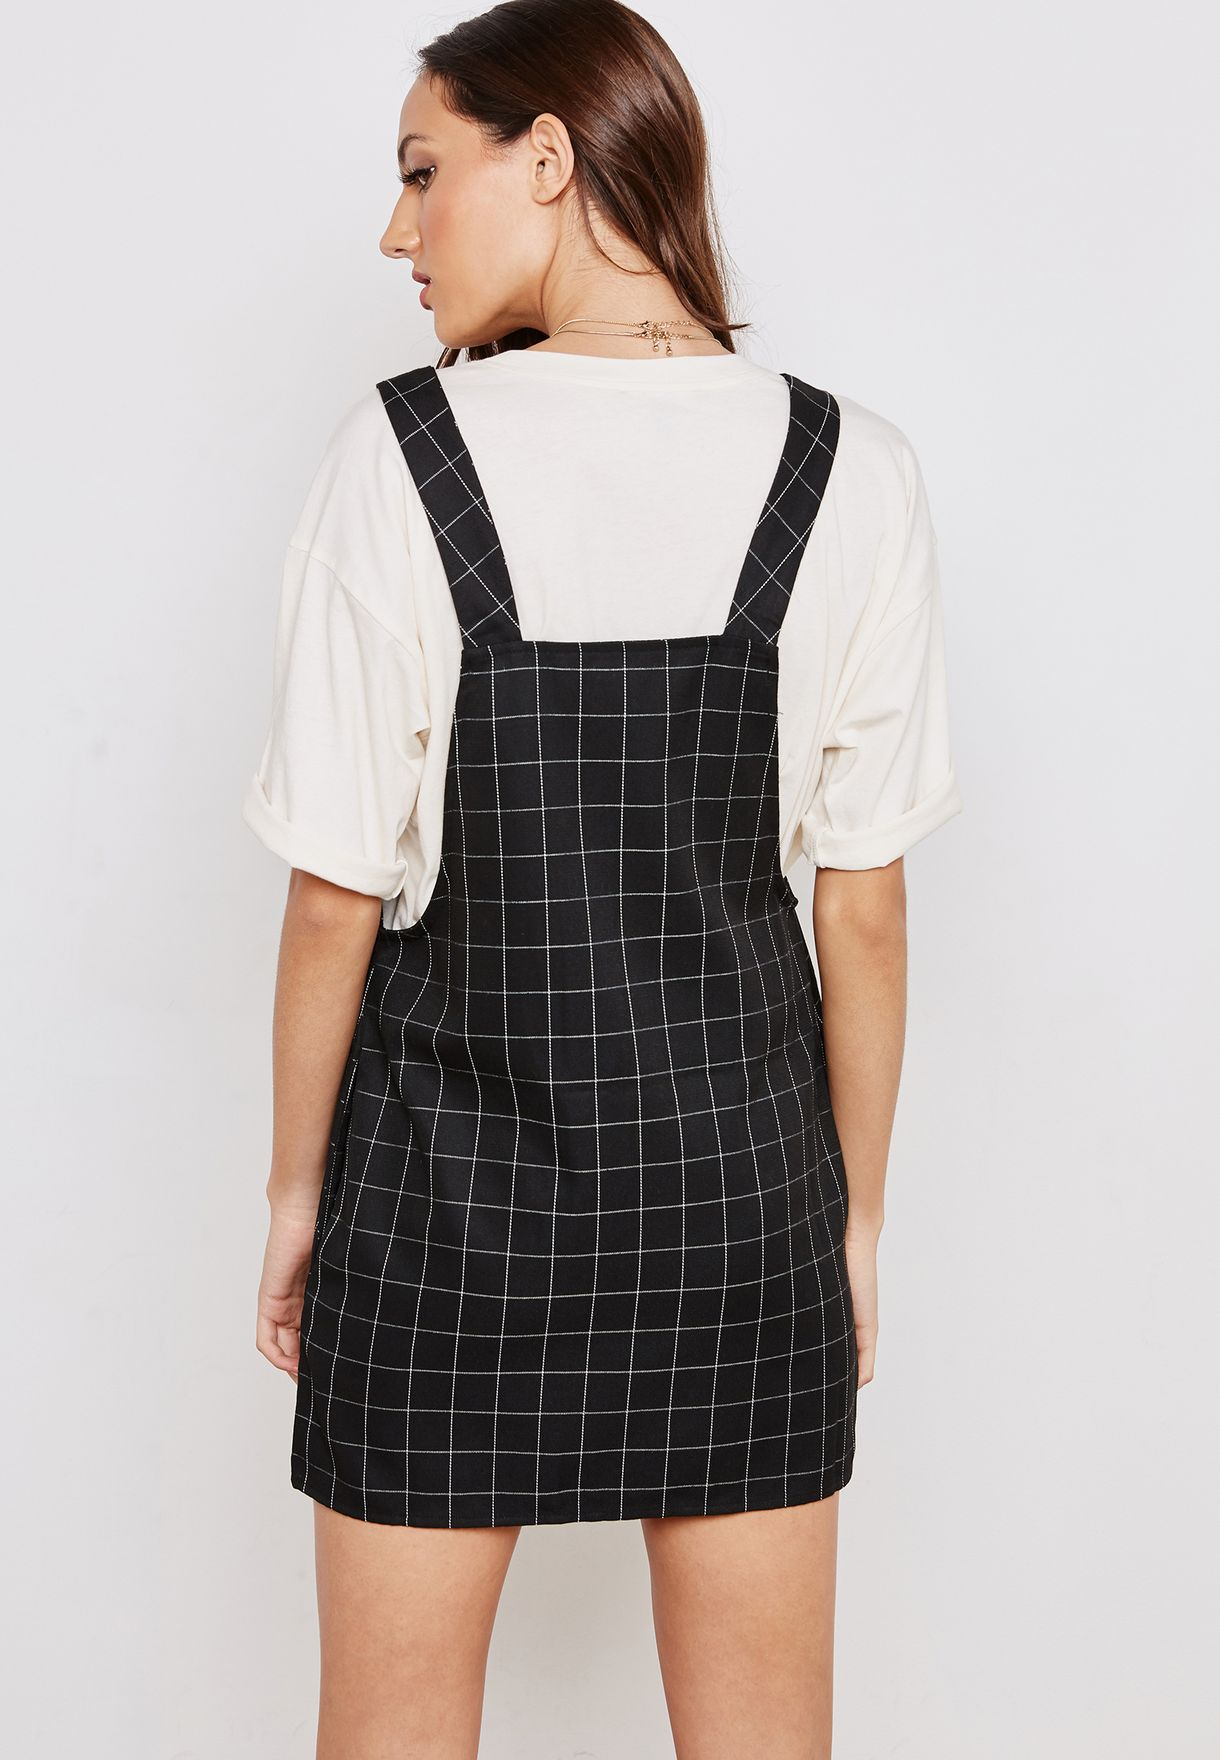 40961a89d01 Shop Forever 21 black Full Zip Checked Pinafore Dress 280532 for ...